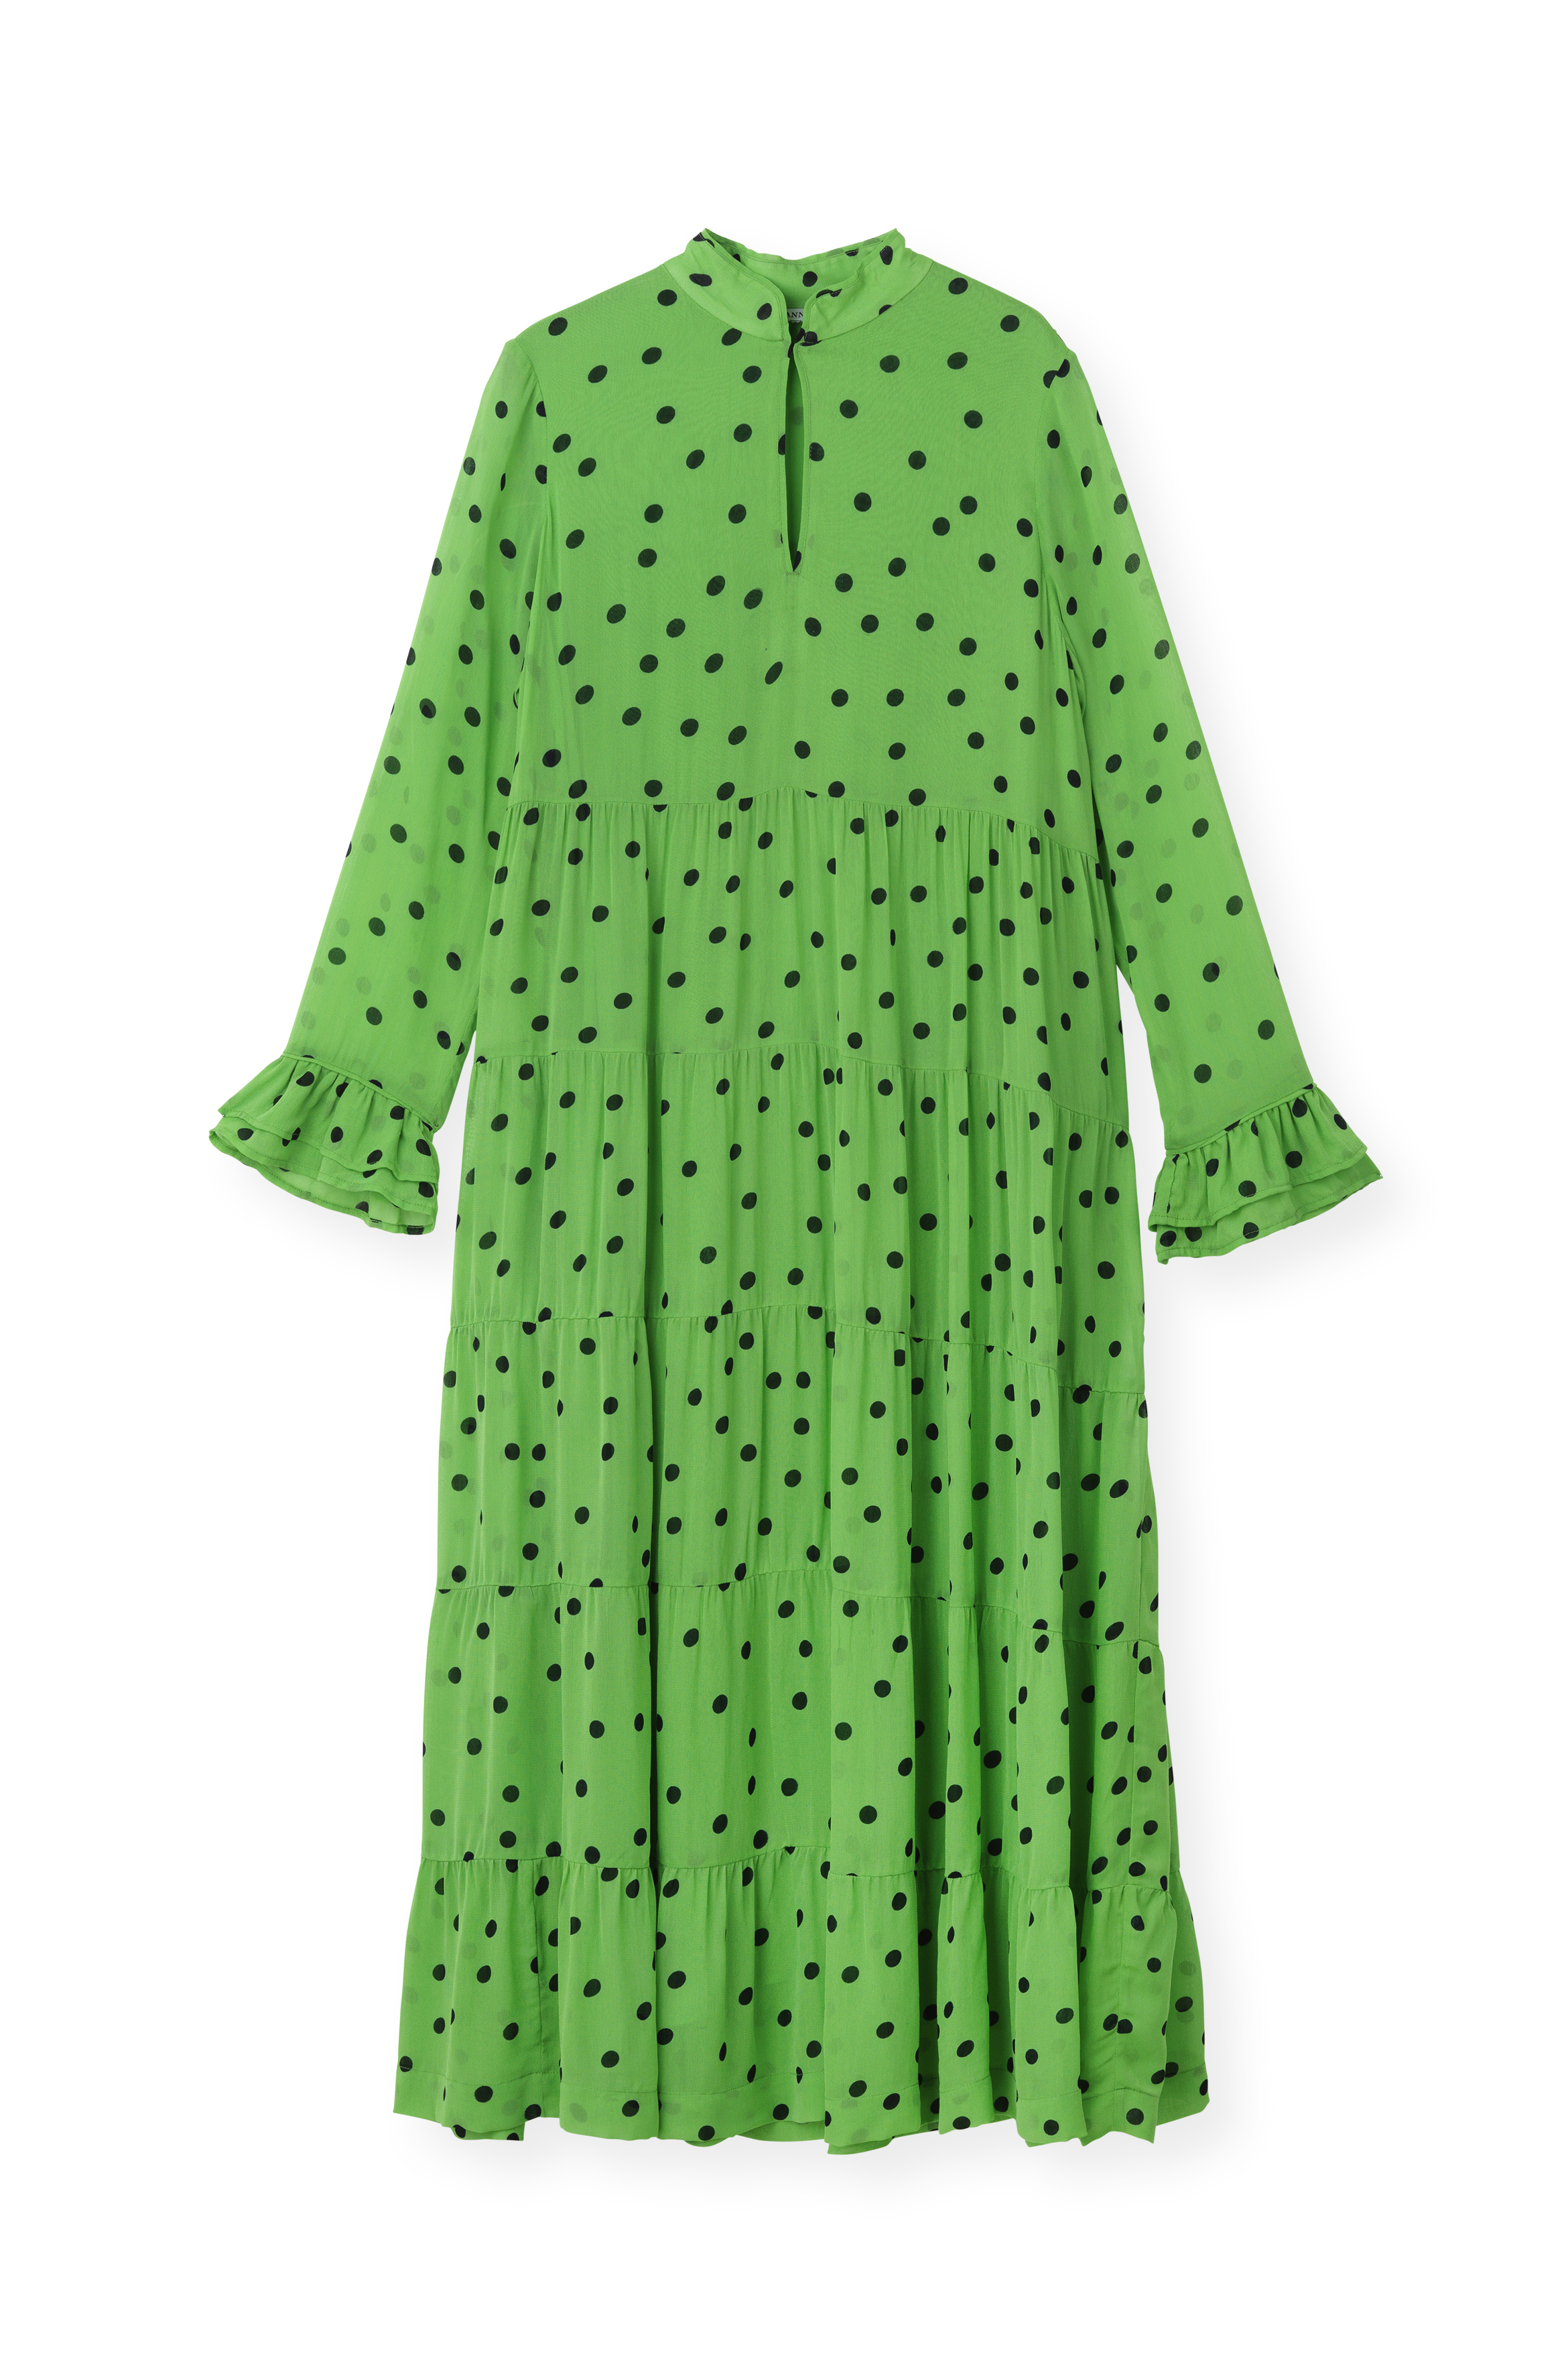 Ganni Ganni Dainty Georgette Maxi Dress, f2547 classic green